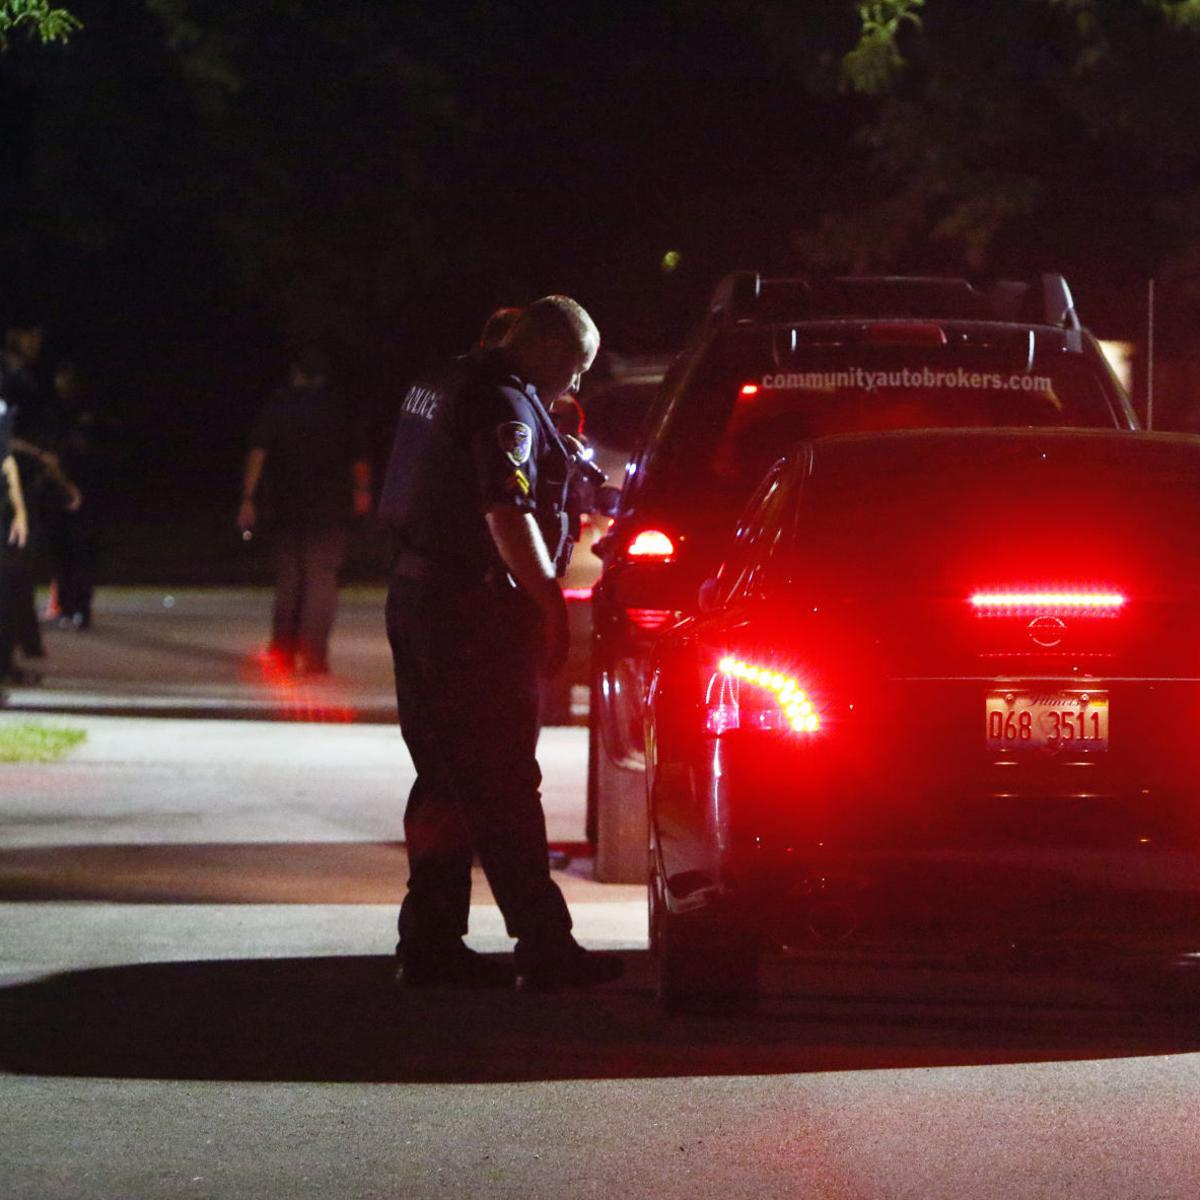 5 arrested for OWI during 'Drive Sober or Get Pulled Over